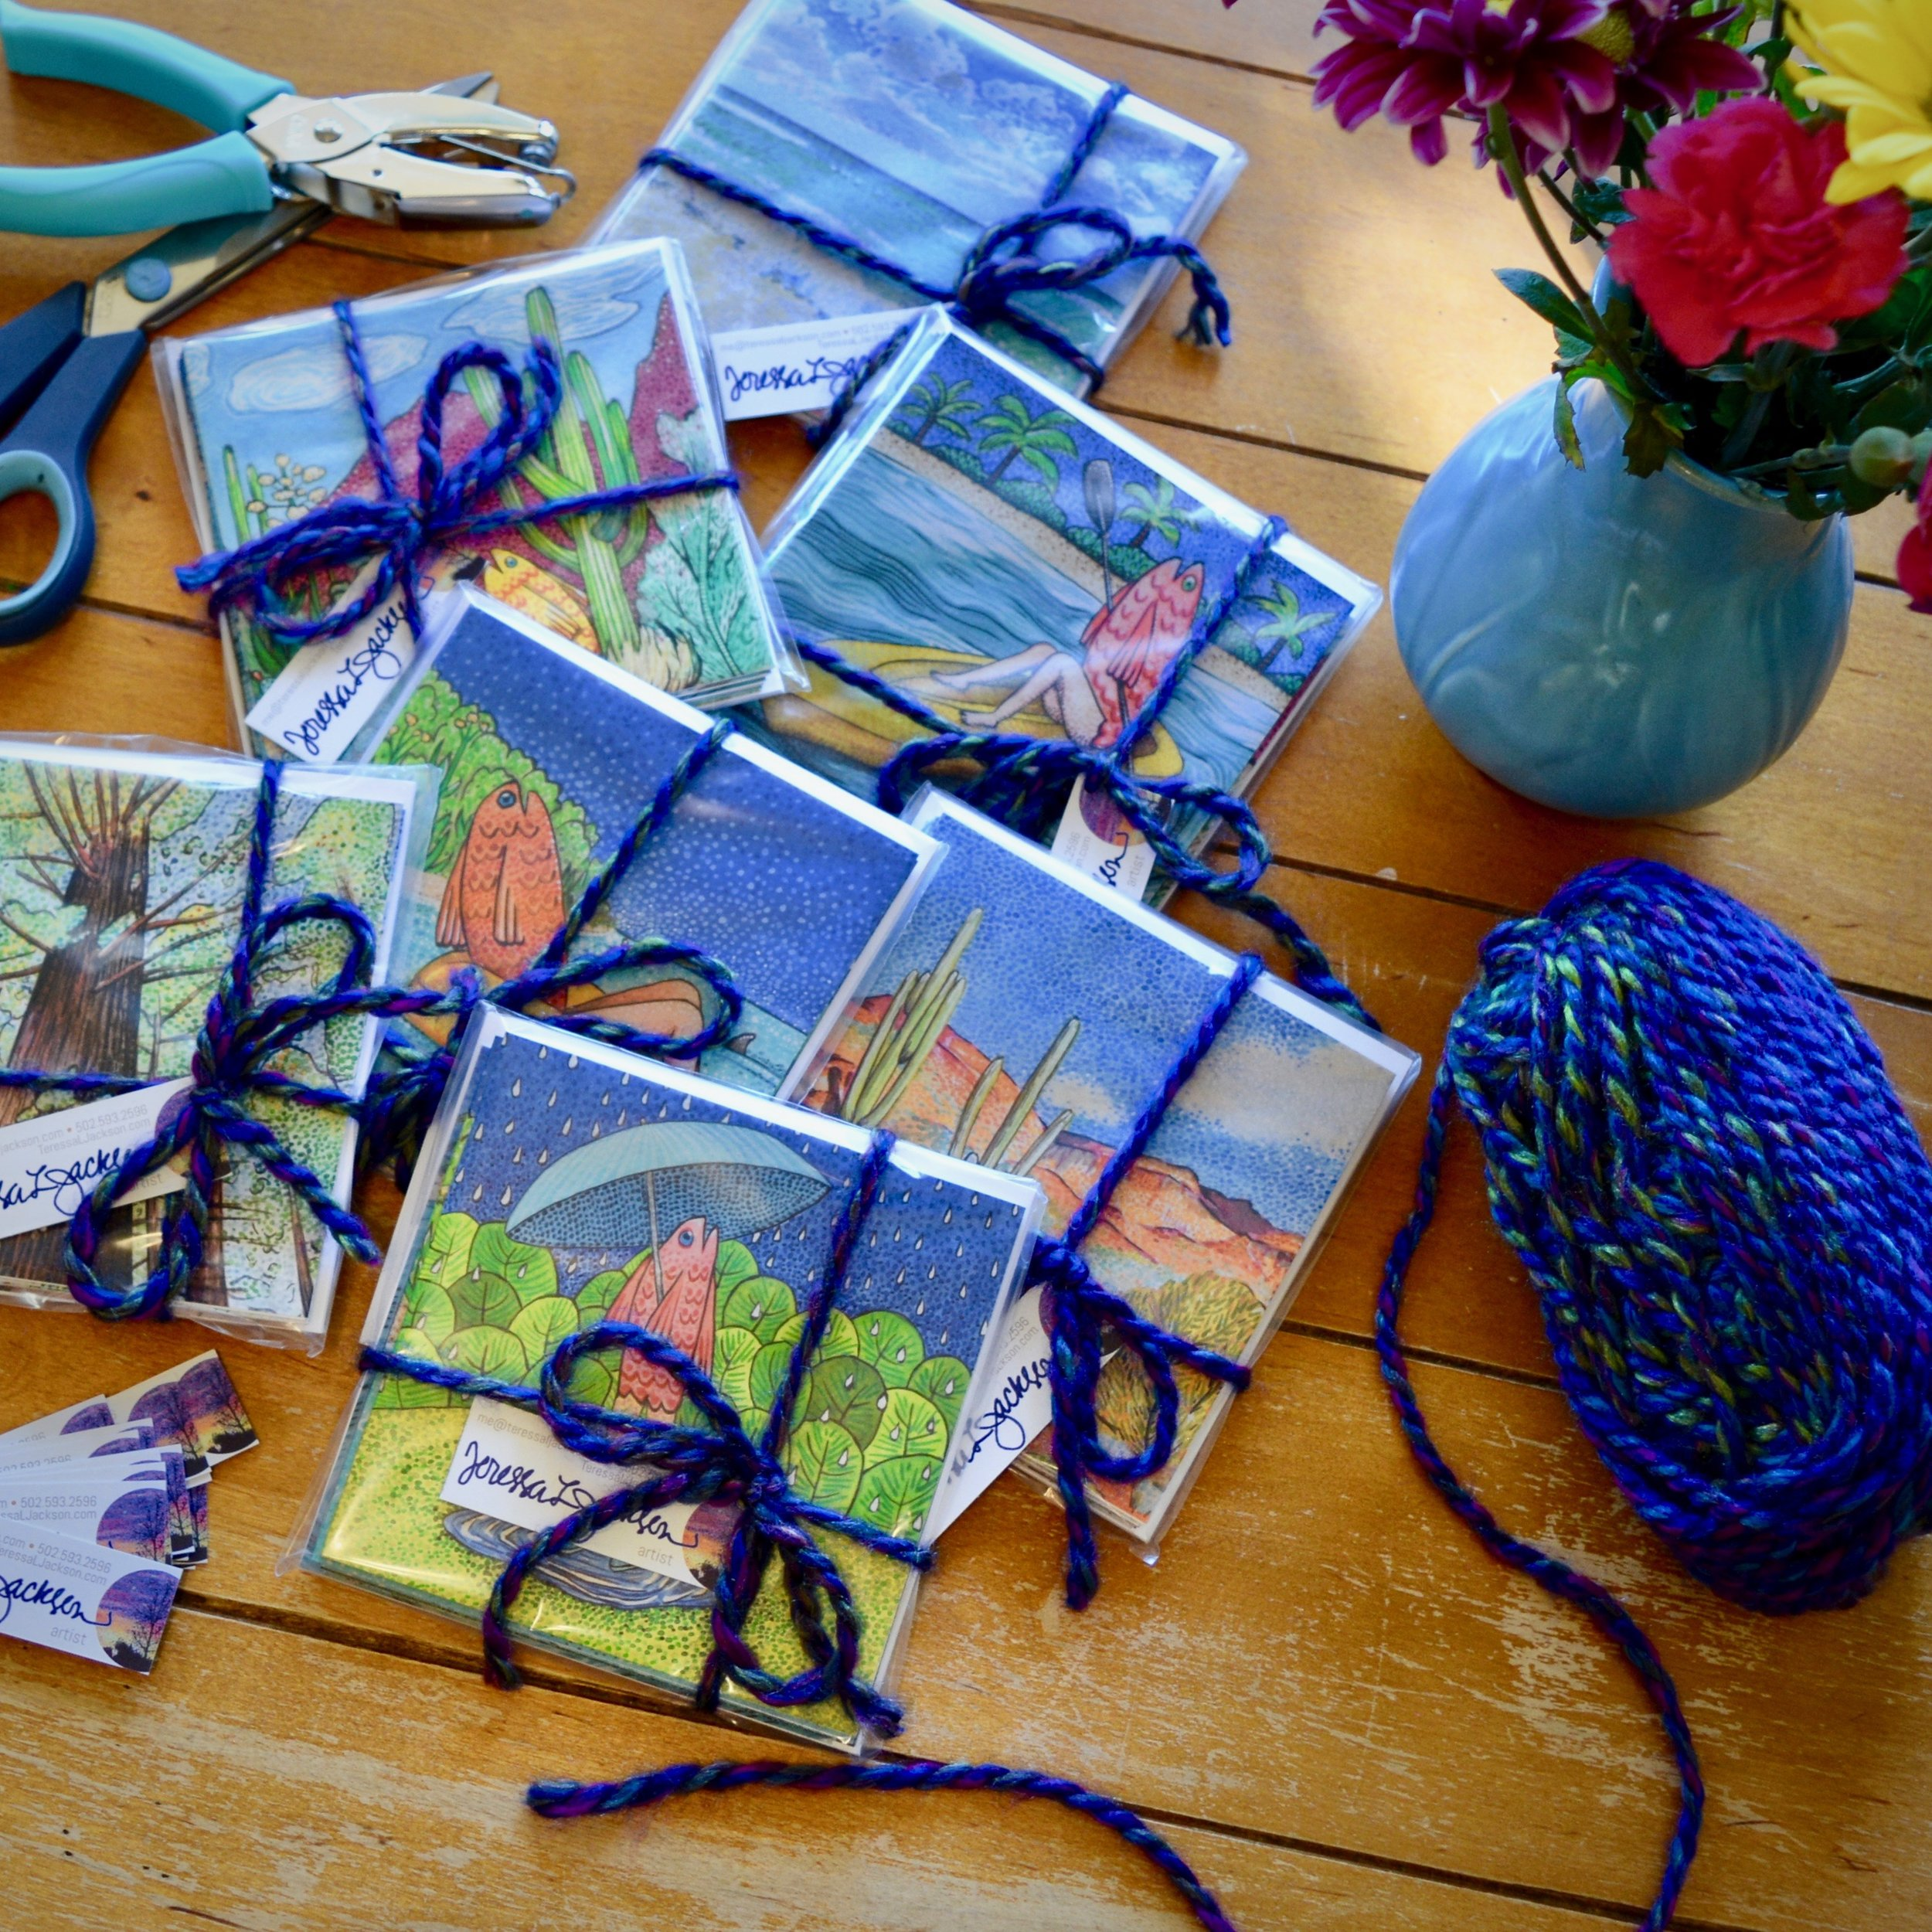 Hard at work packaging up those new greeting cards!